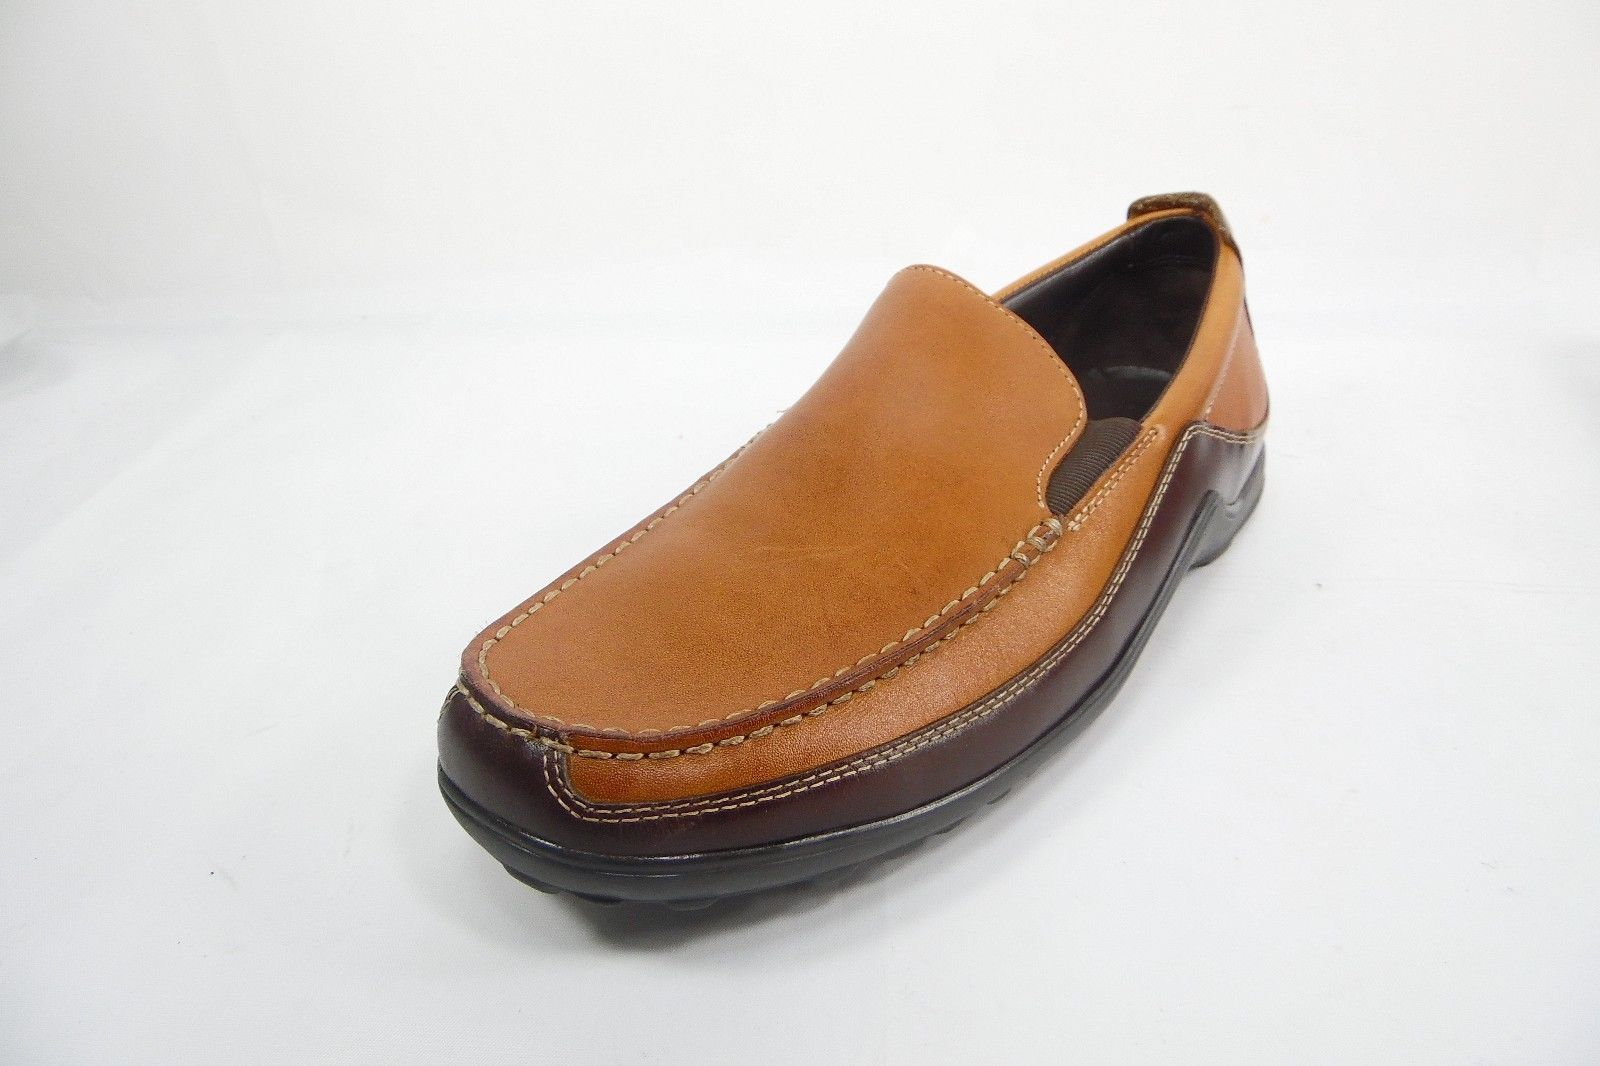 5b888f5cad7 Cole Haan Tucker Venetian Leather Slip On and 50 similar items. S l1600